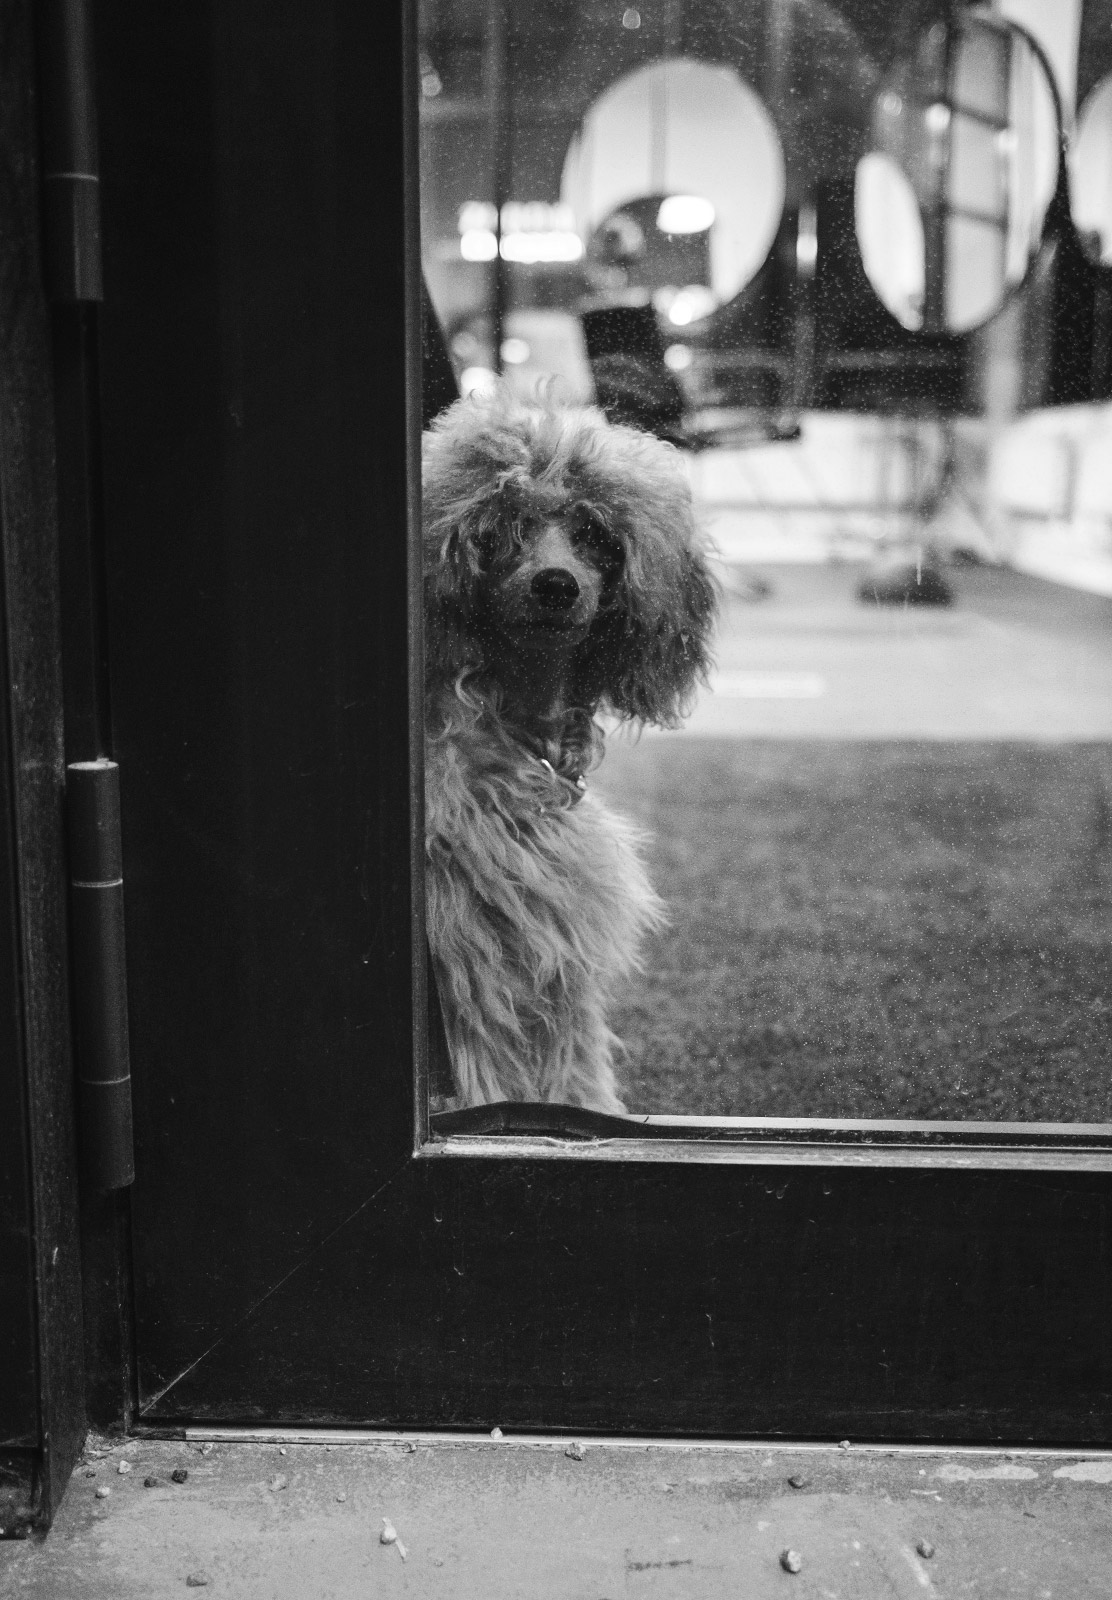 Dog looking out of door